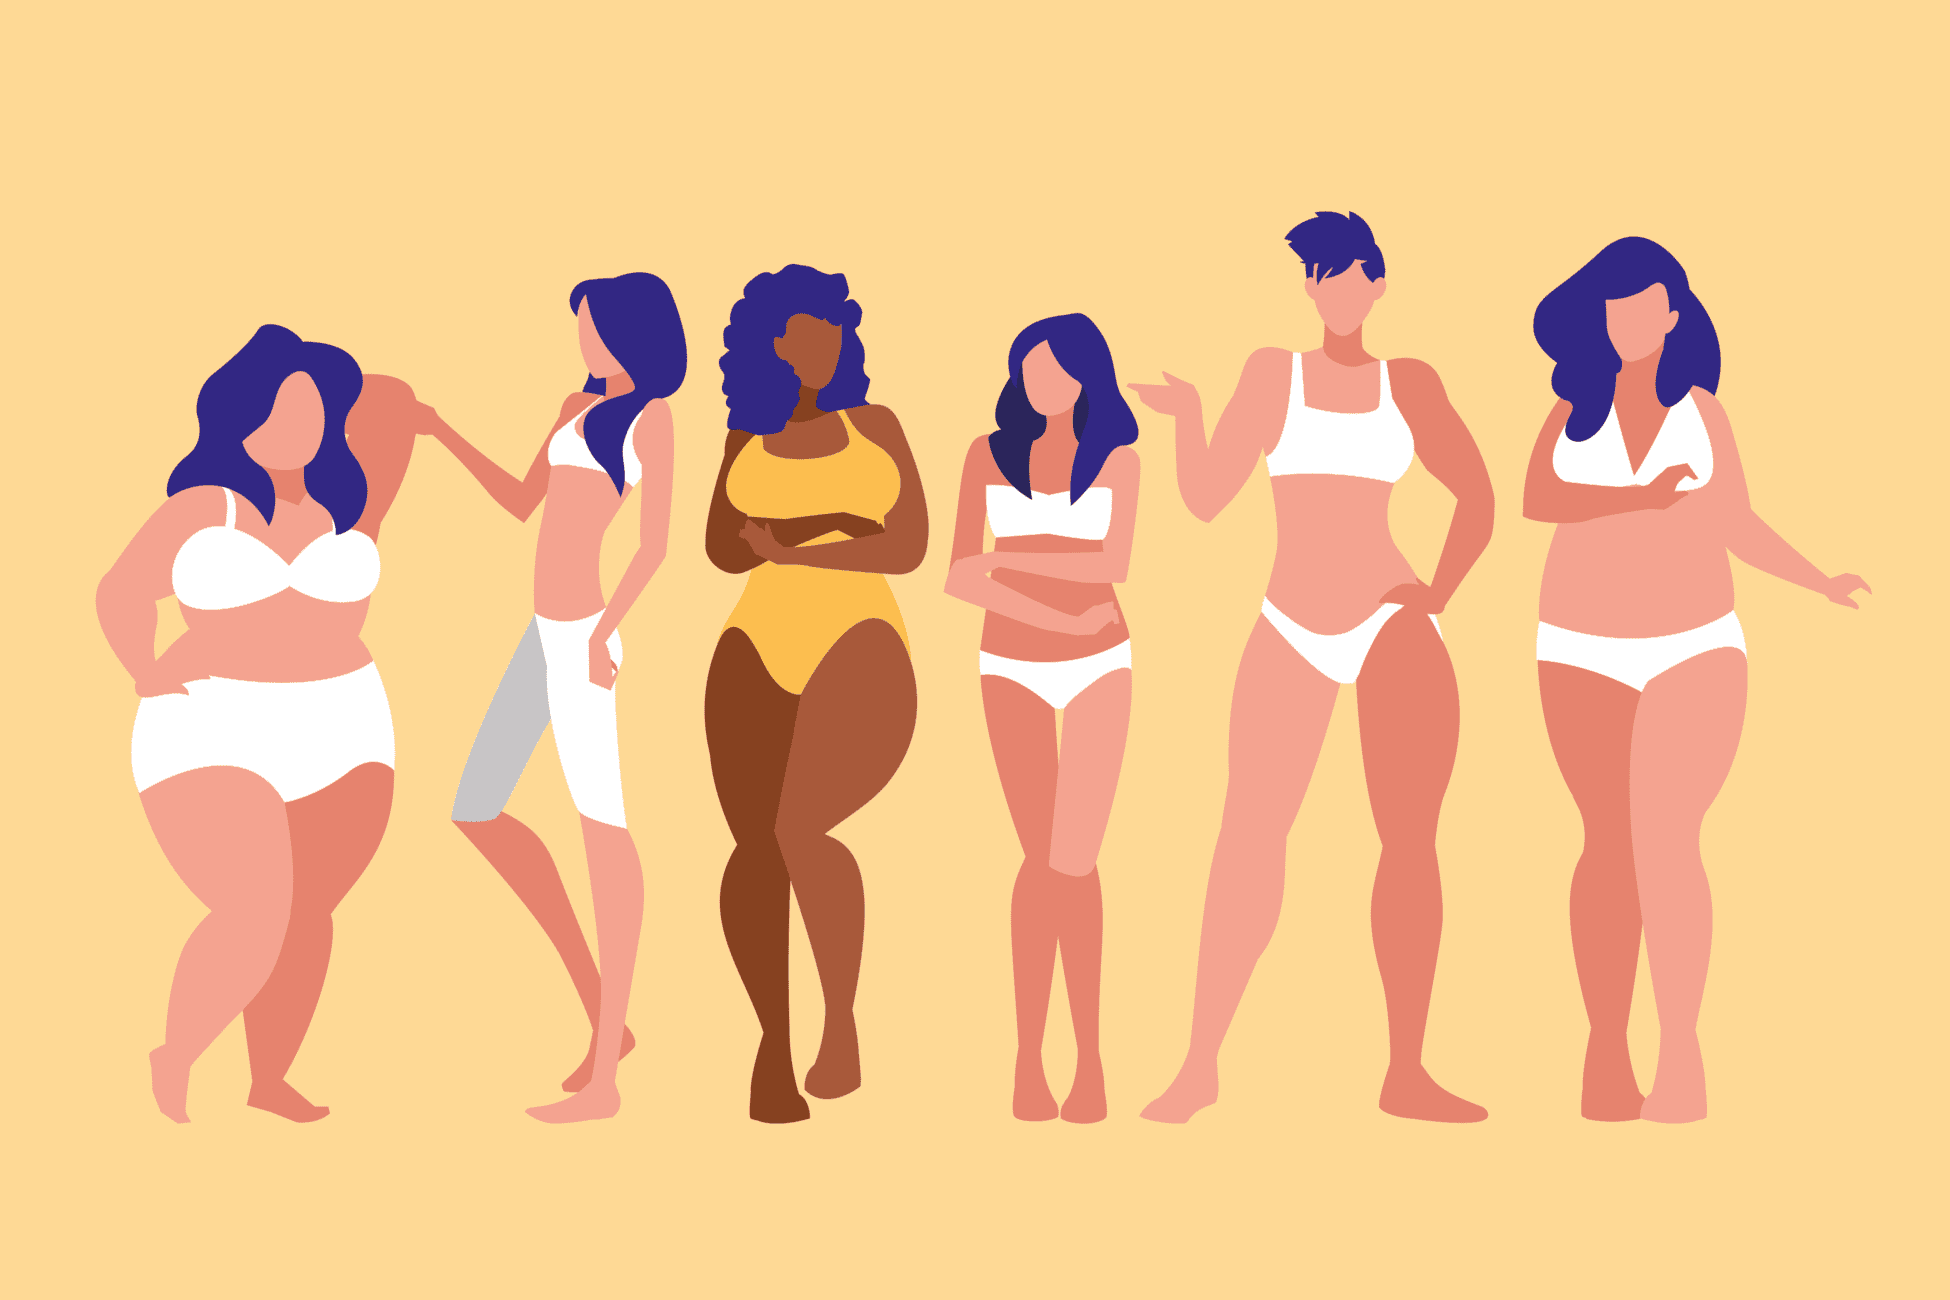 Illustration on women with different body types.